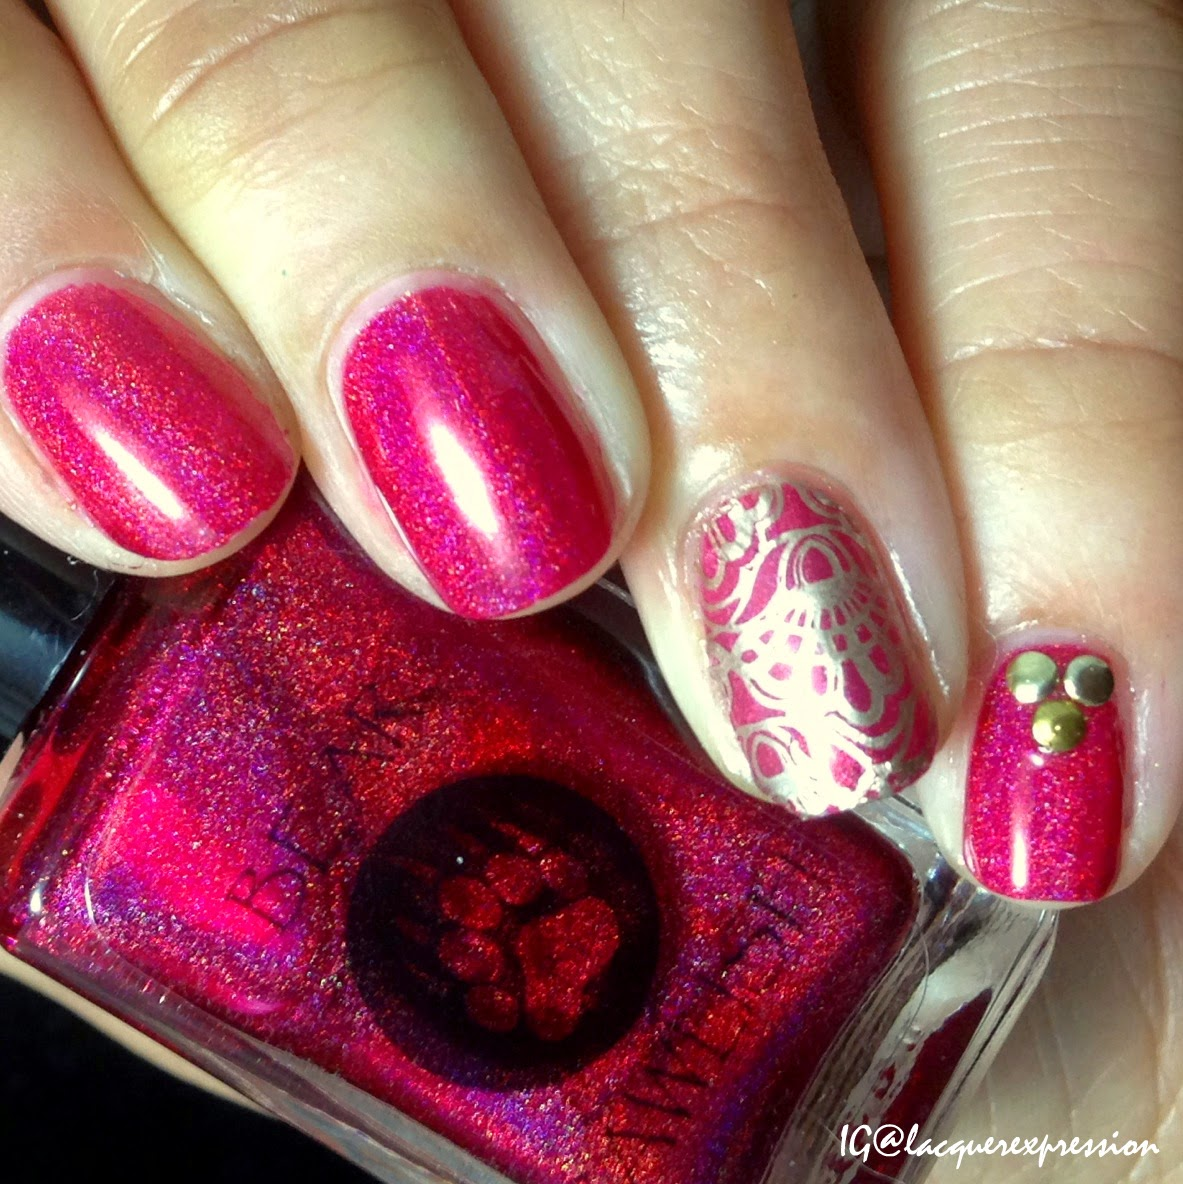 swatch of she's a fish killer nail polish by bear pawlish